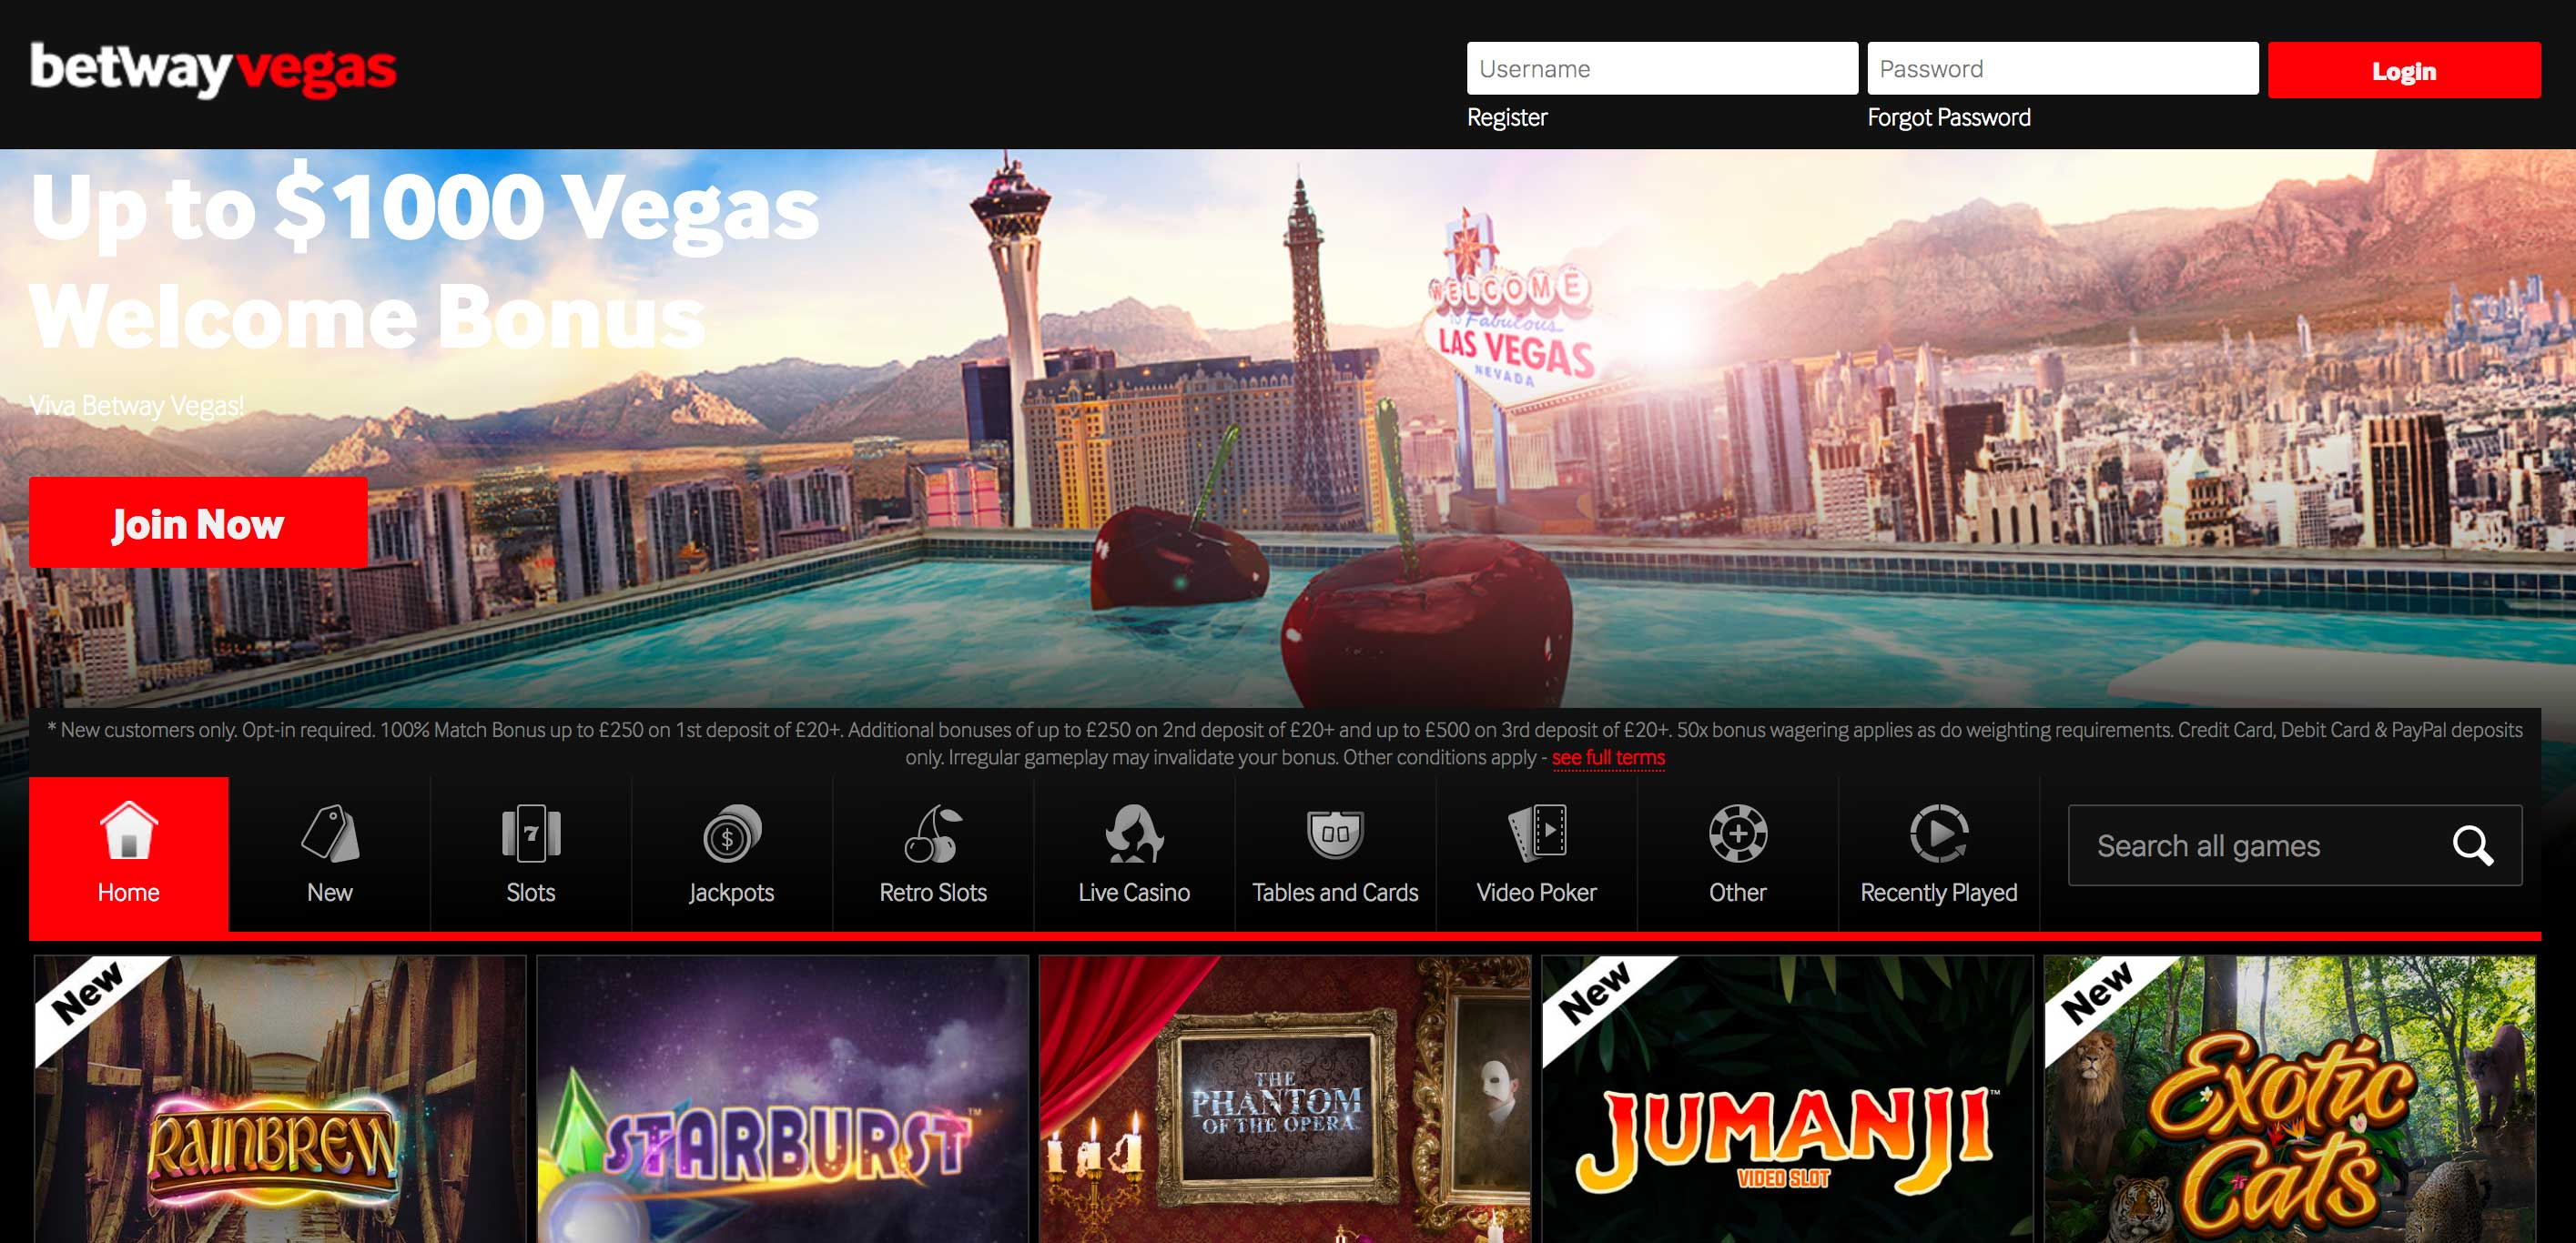 Betway Vegas Screenshot